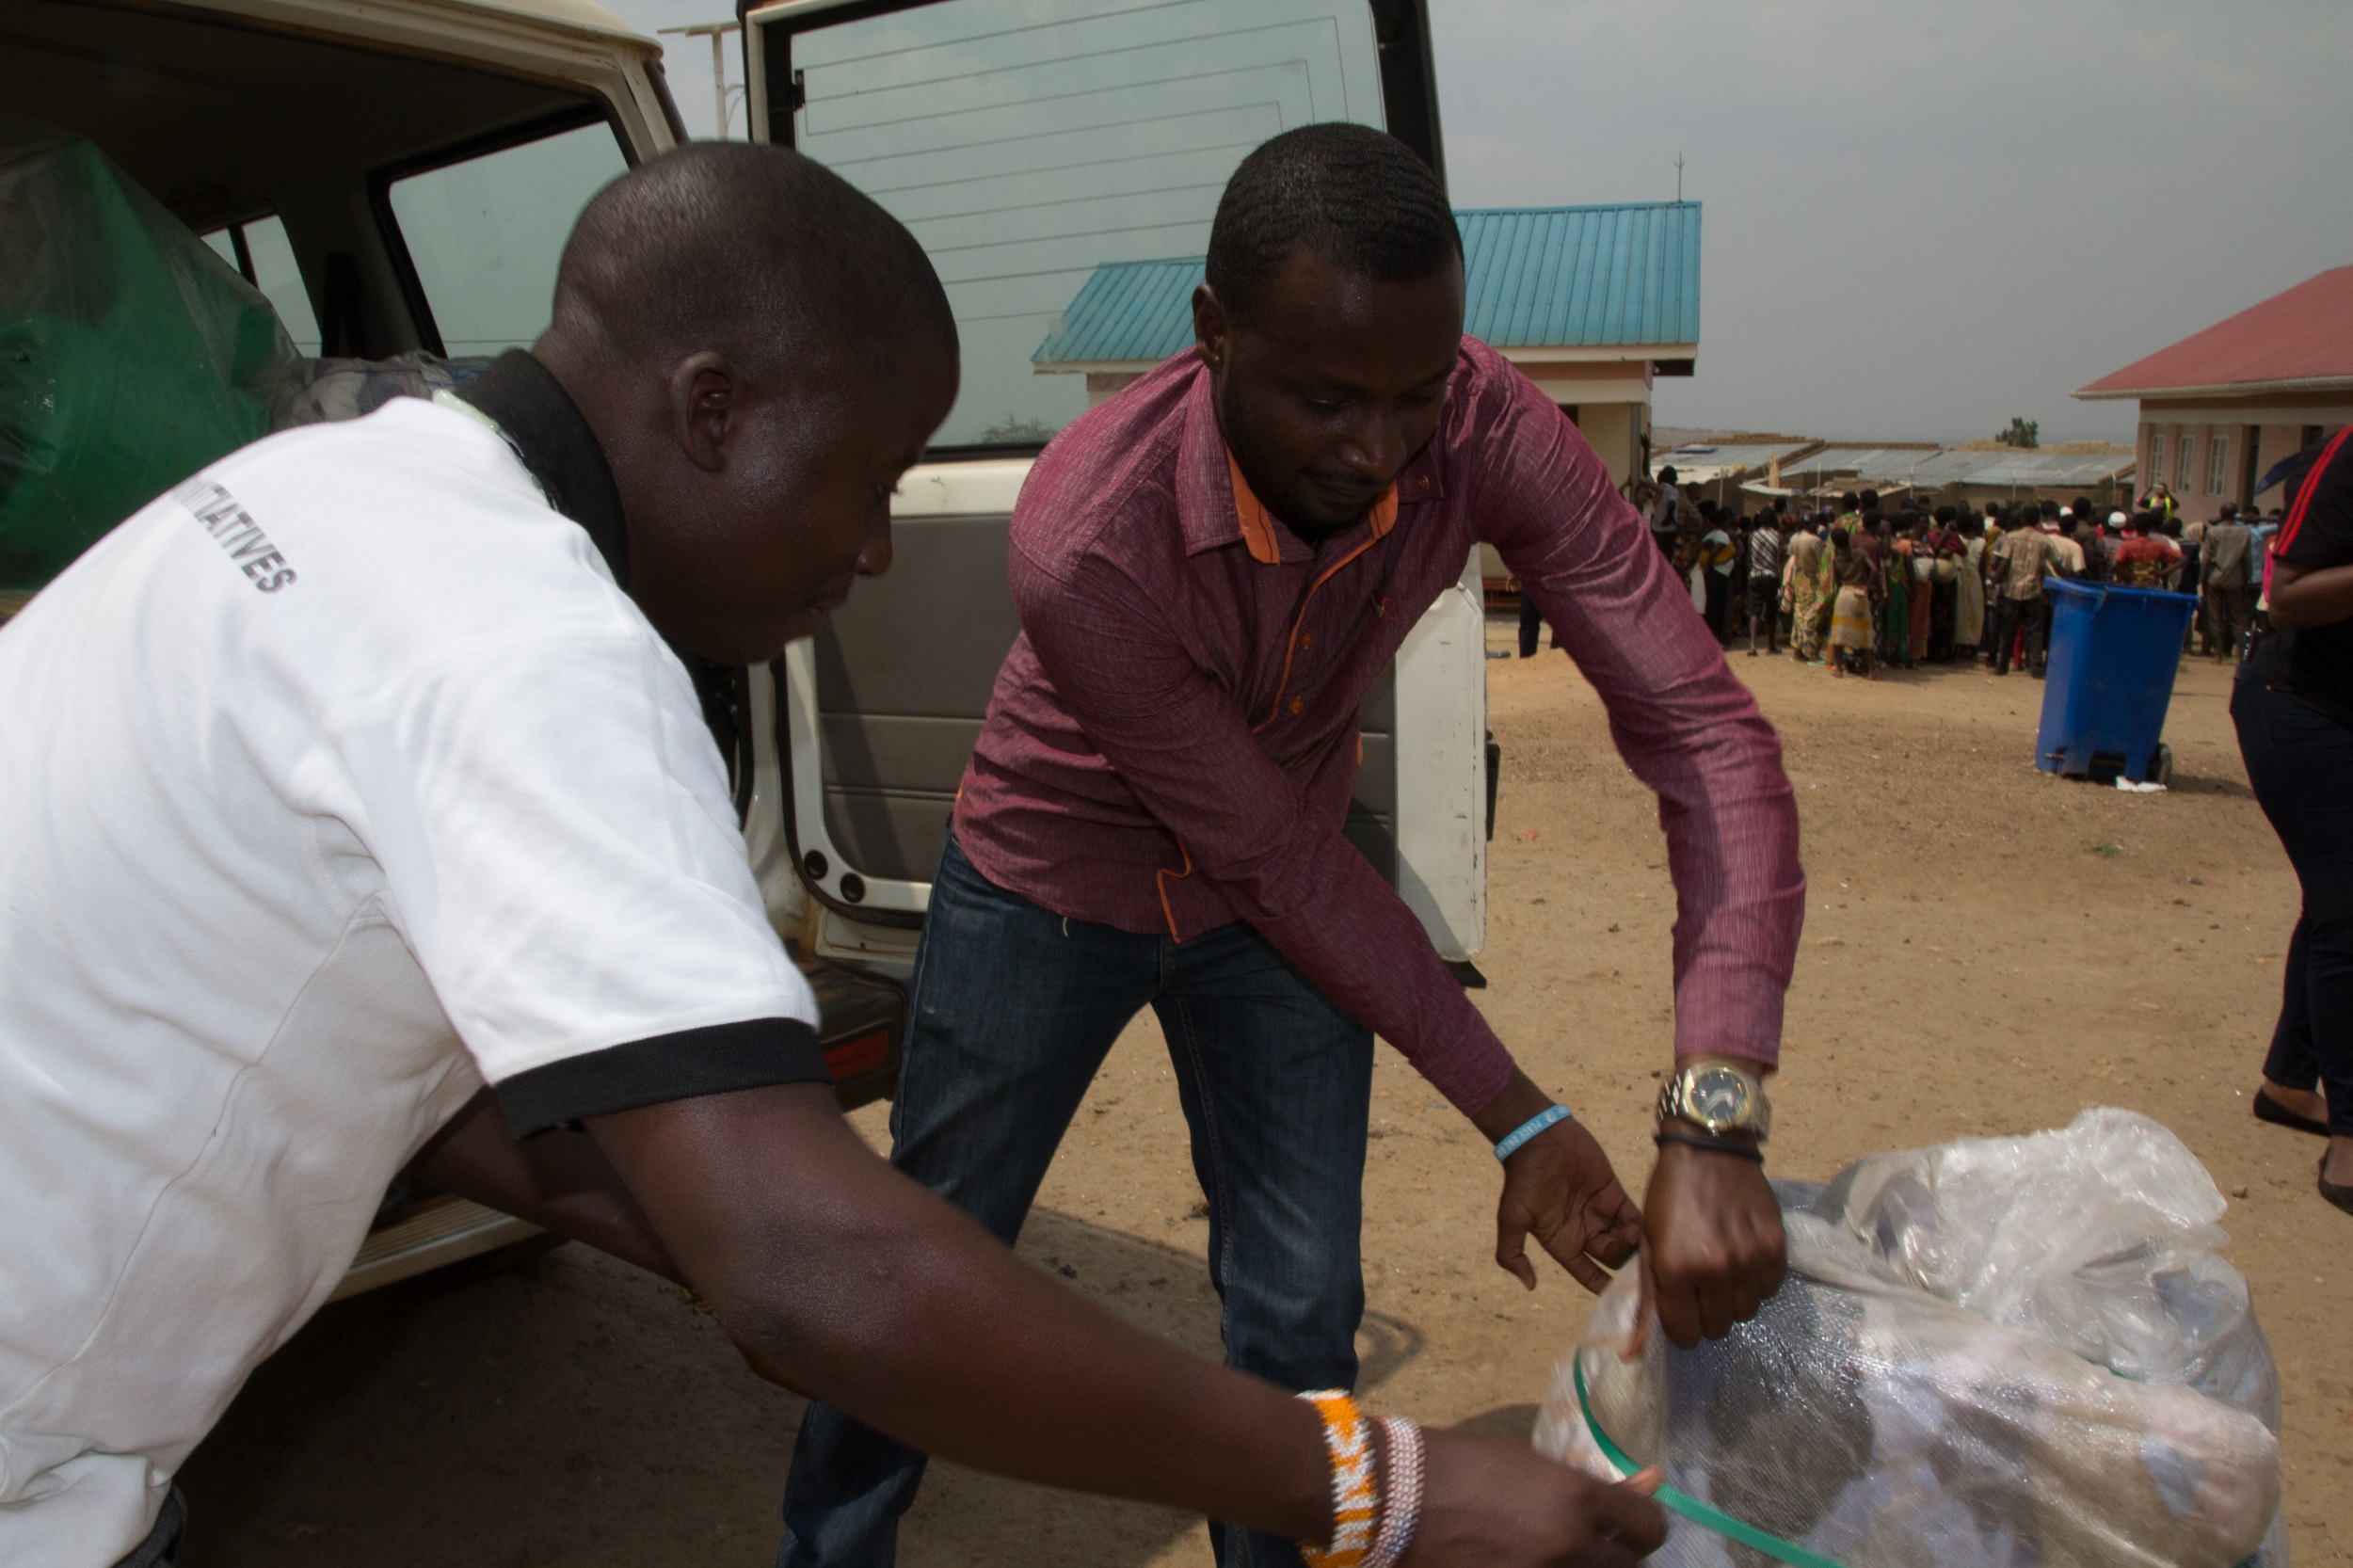 Two men pulling out a sack of supplies from the back of a truck putting it on the ground